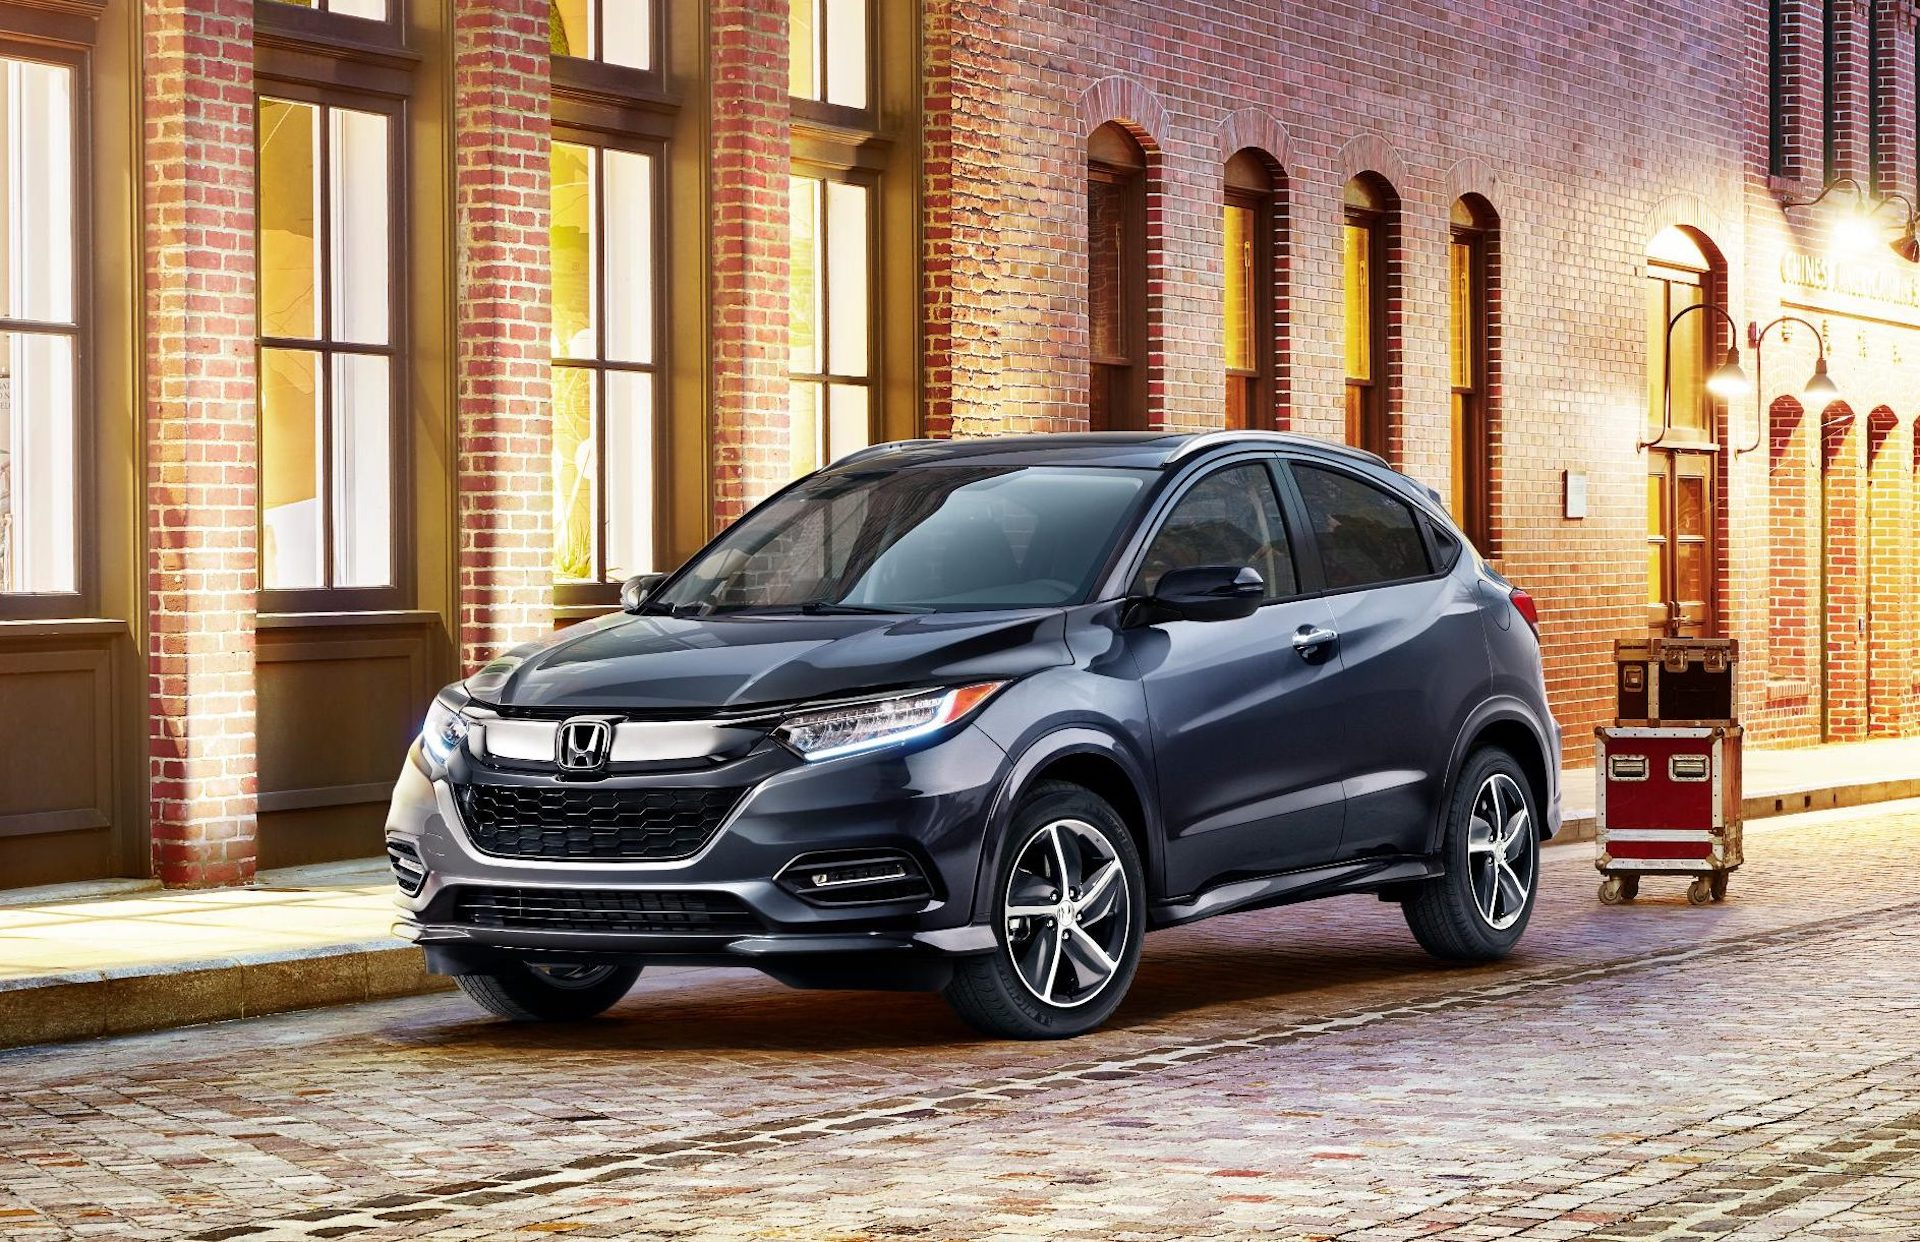 2019 Honda HR-V: Updates, Design, Price >> 2019 Honda Hr V Cute Crossover Updated With New Looks